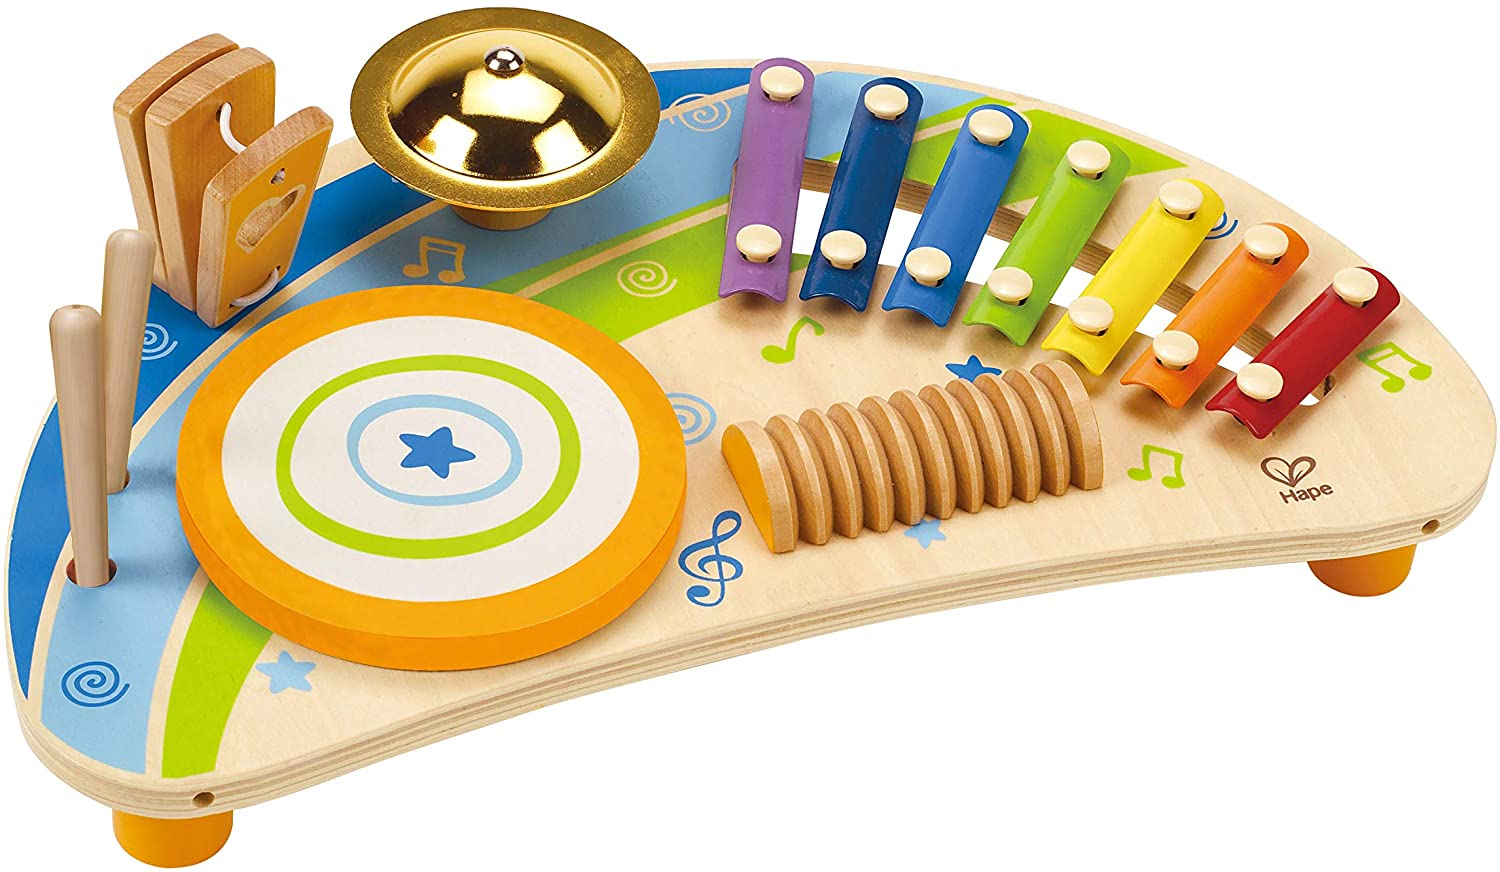 Preschool Toys: Hape Wooden Dollhouse Animals $8, Percussion Instrument